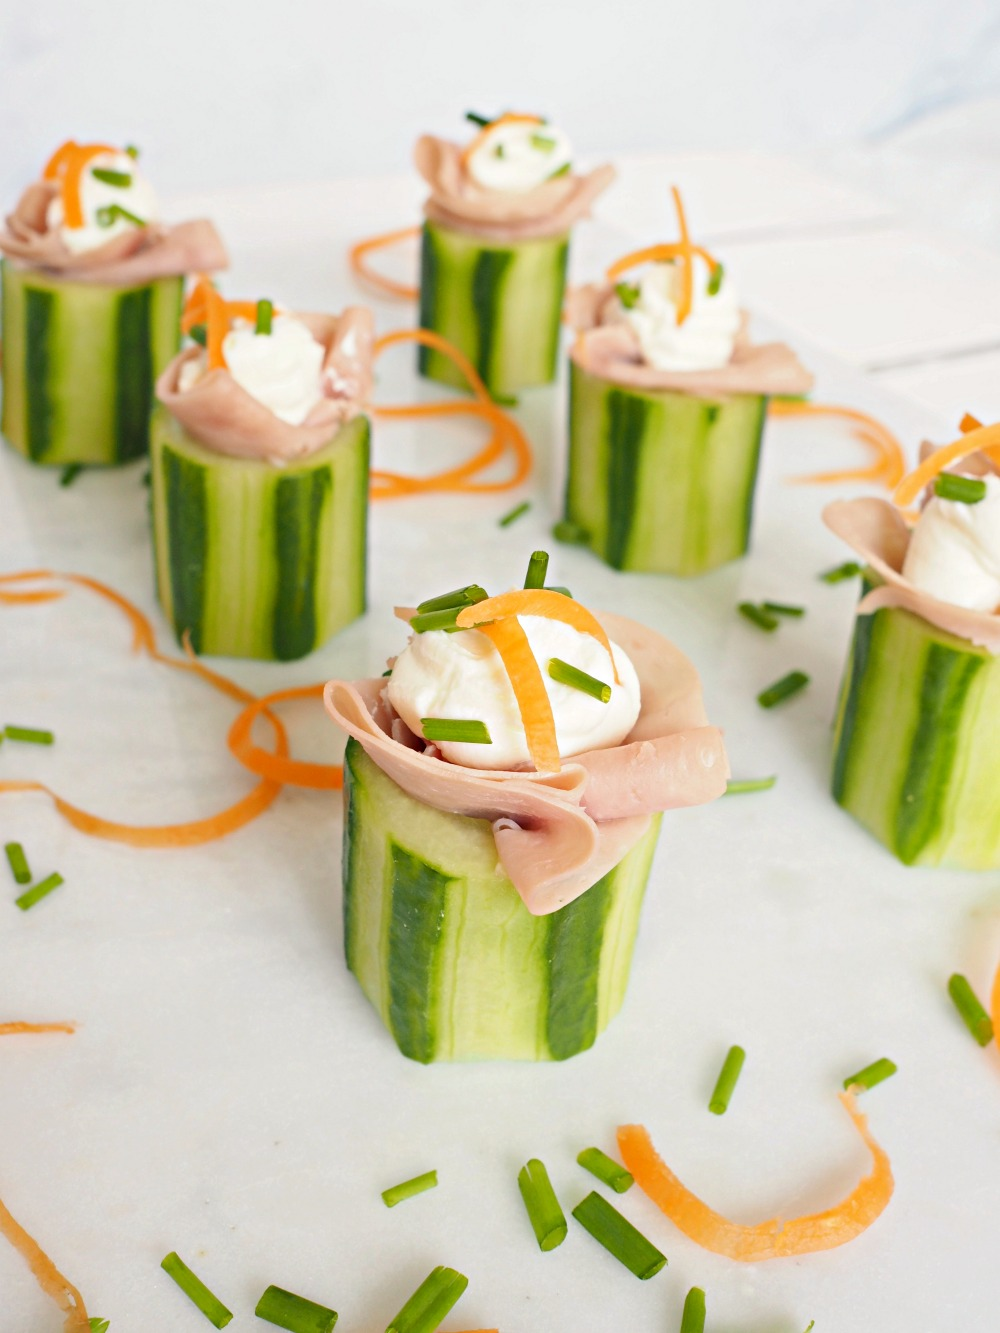 Some kids party food. Ham and cucumber bites, stuffed with cream cheese and topped with shredded carrot and chives